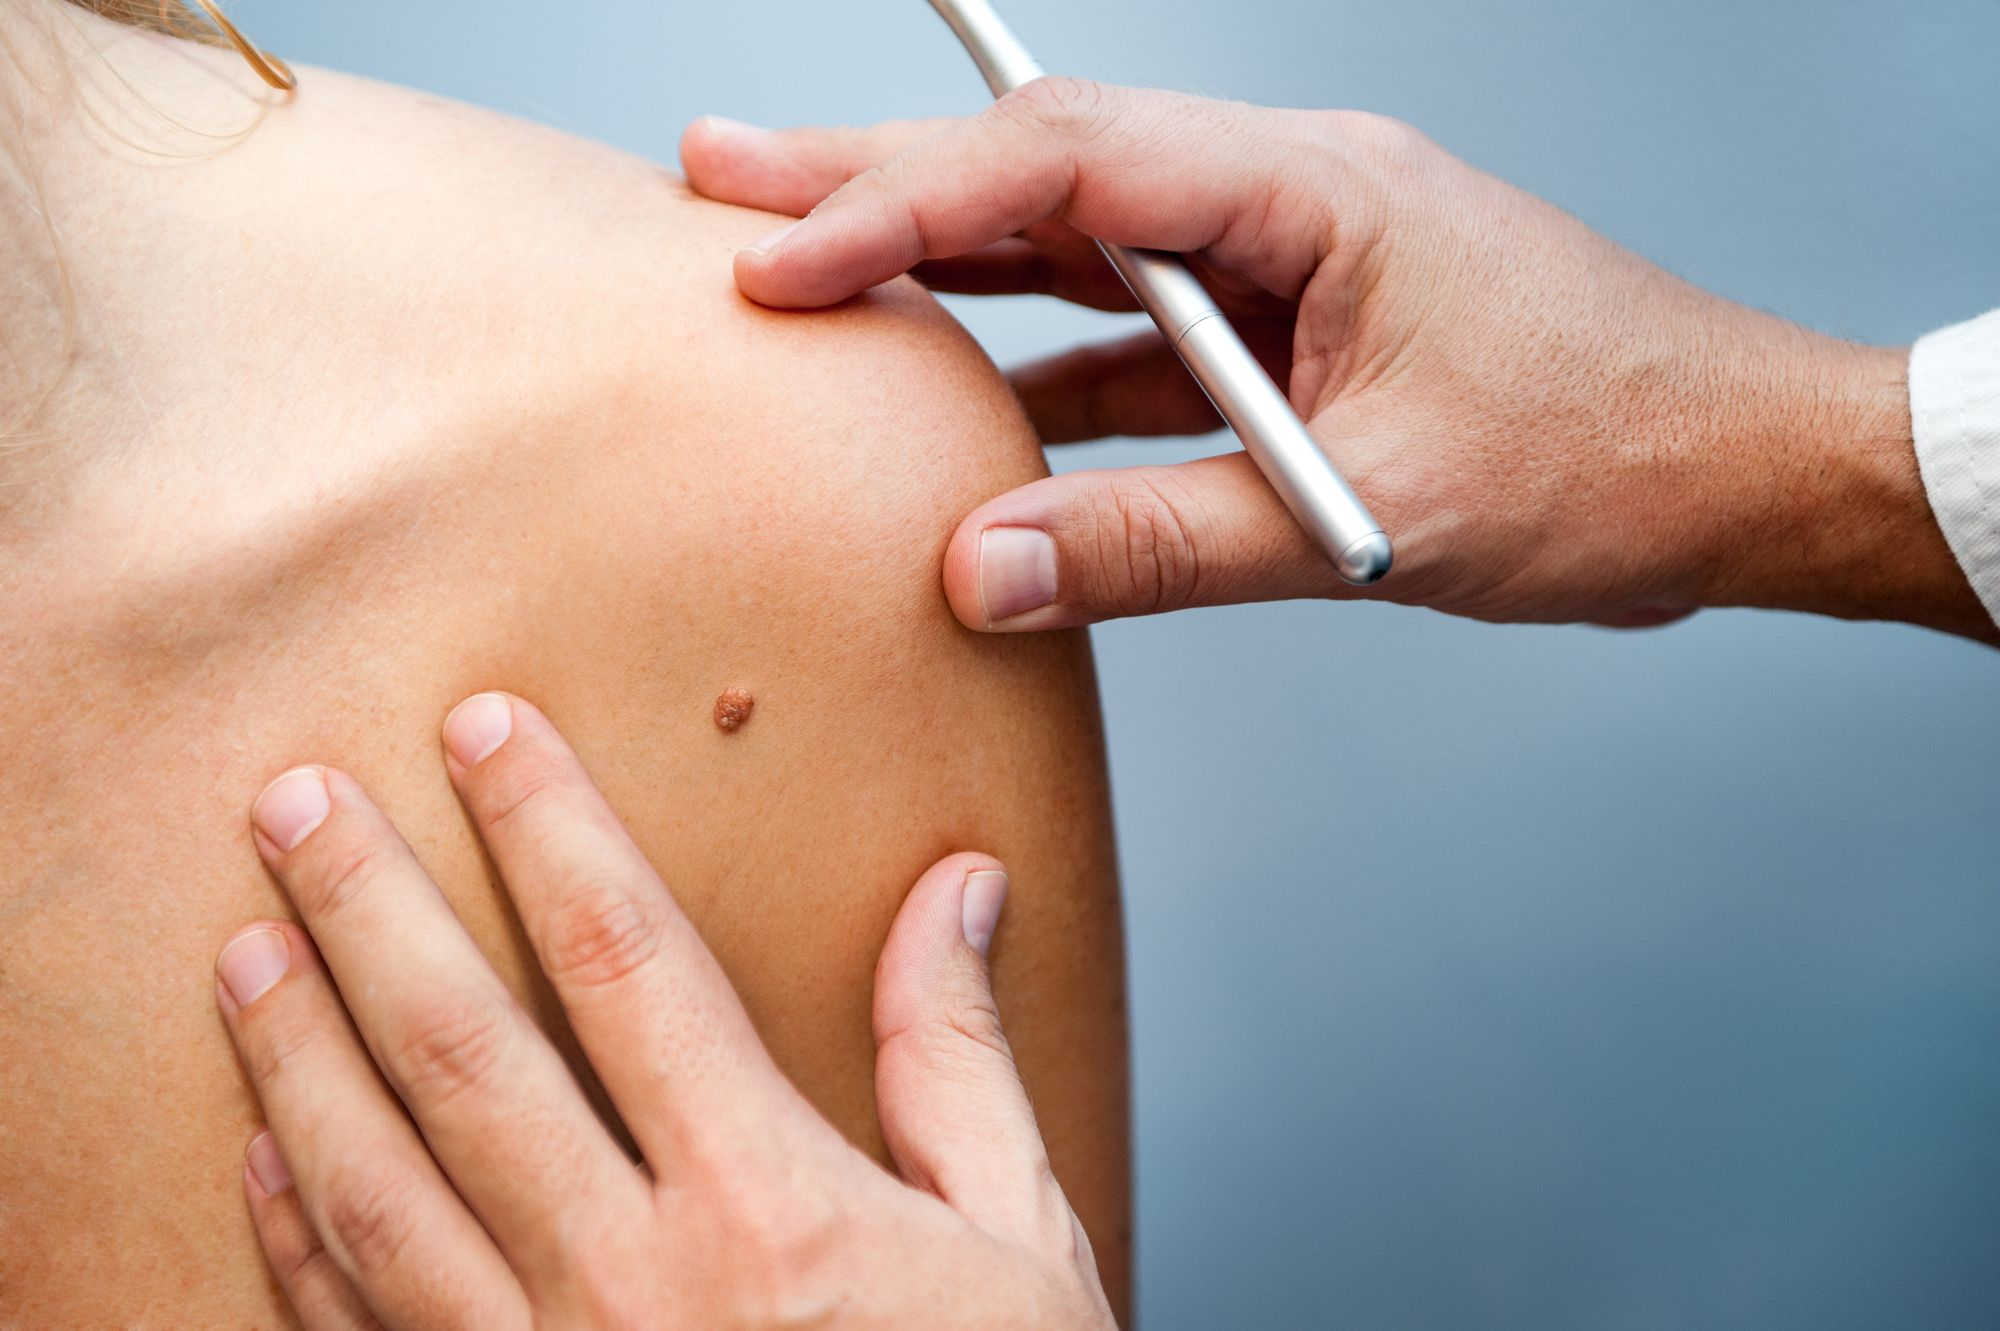 7 Things You Should Know About Free Skin Cancer Screenings